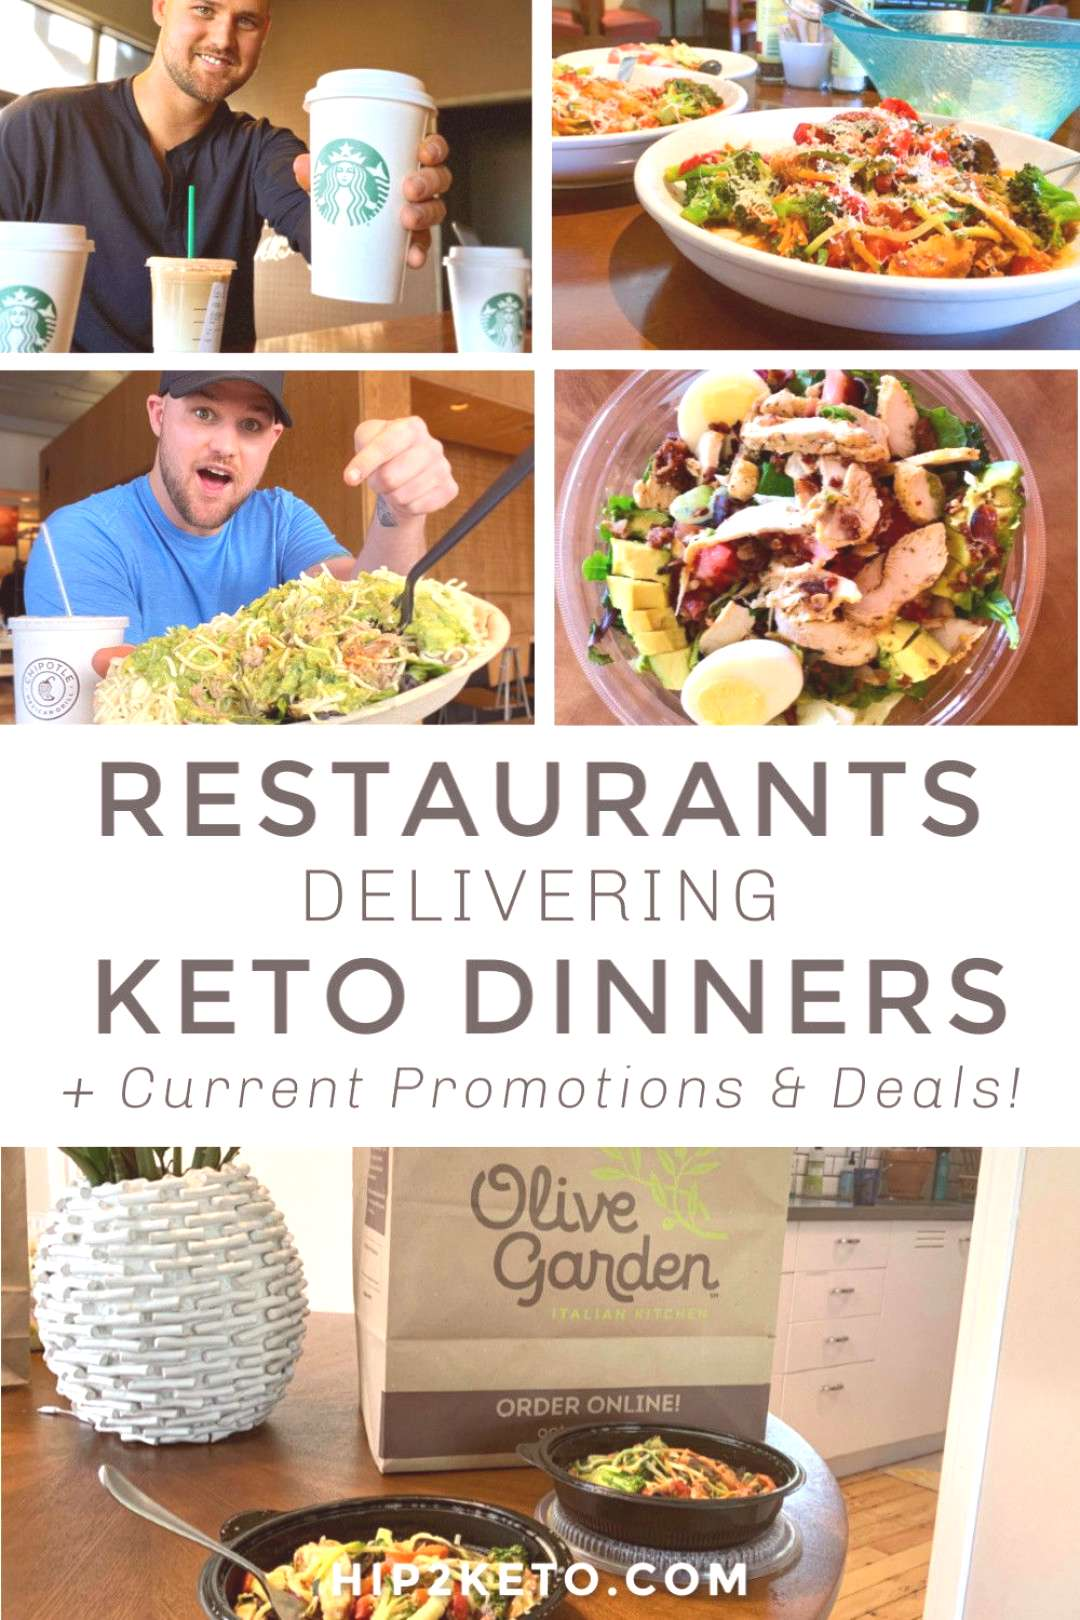 If you're practicing social distancing and looking for ways to support your favorite keto-friendly